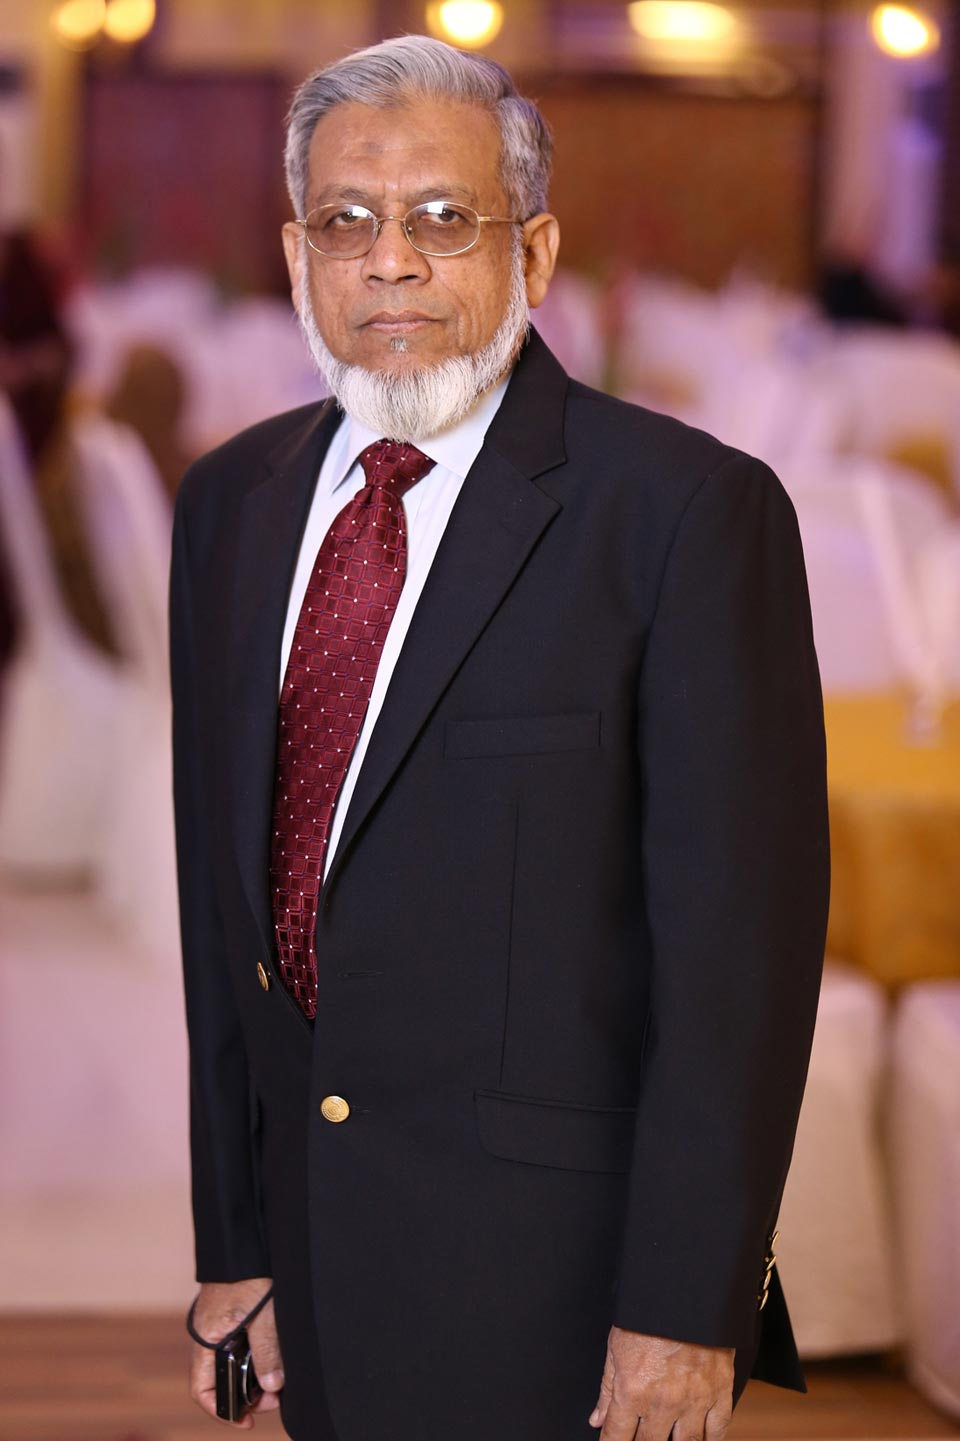 Engr. Iqbal Ahmed Khan